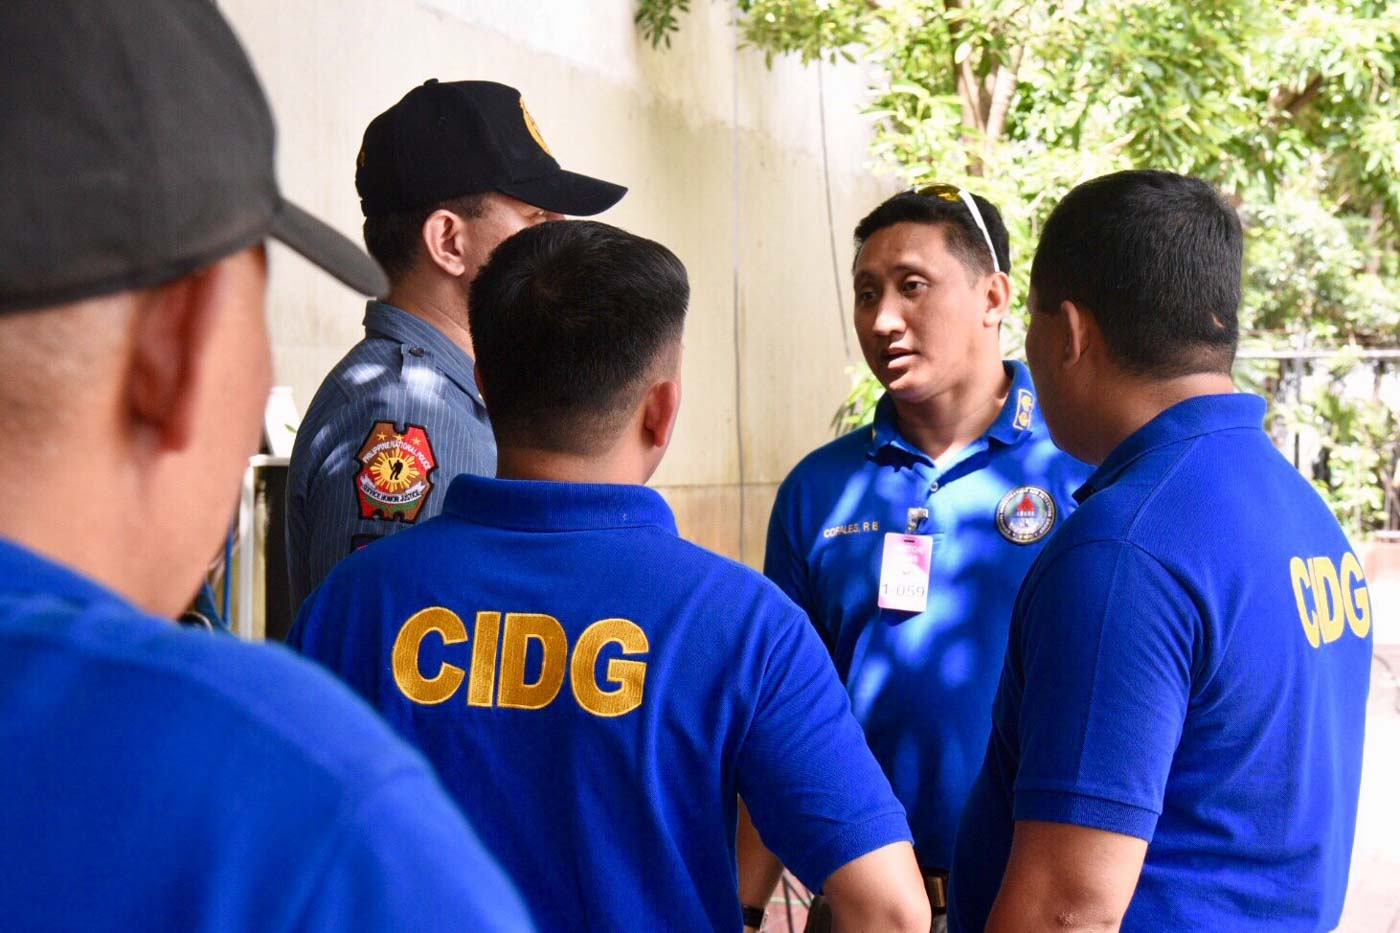 OFF TO SENATE. CIDG personnel are deployed to the Senate for a possible arrest. Photo by Leanne Jazul/Rappler